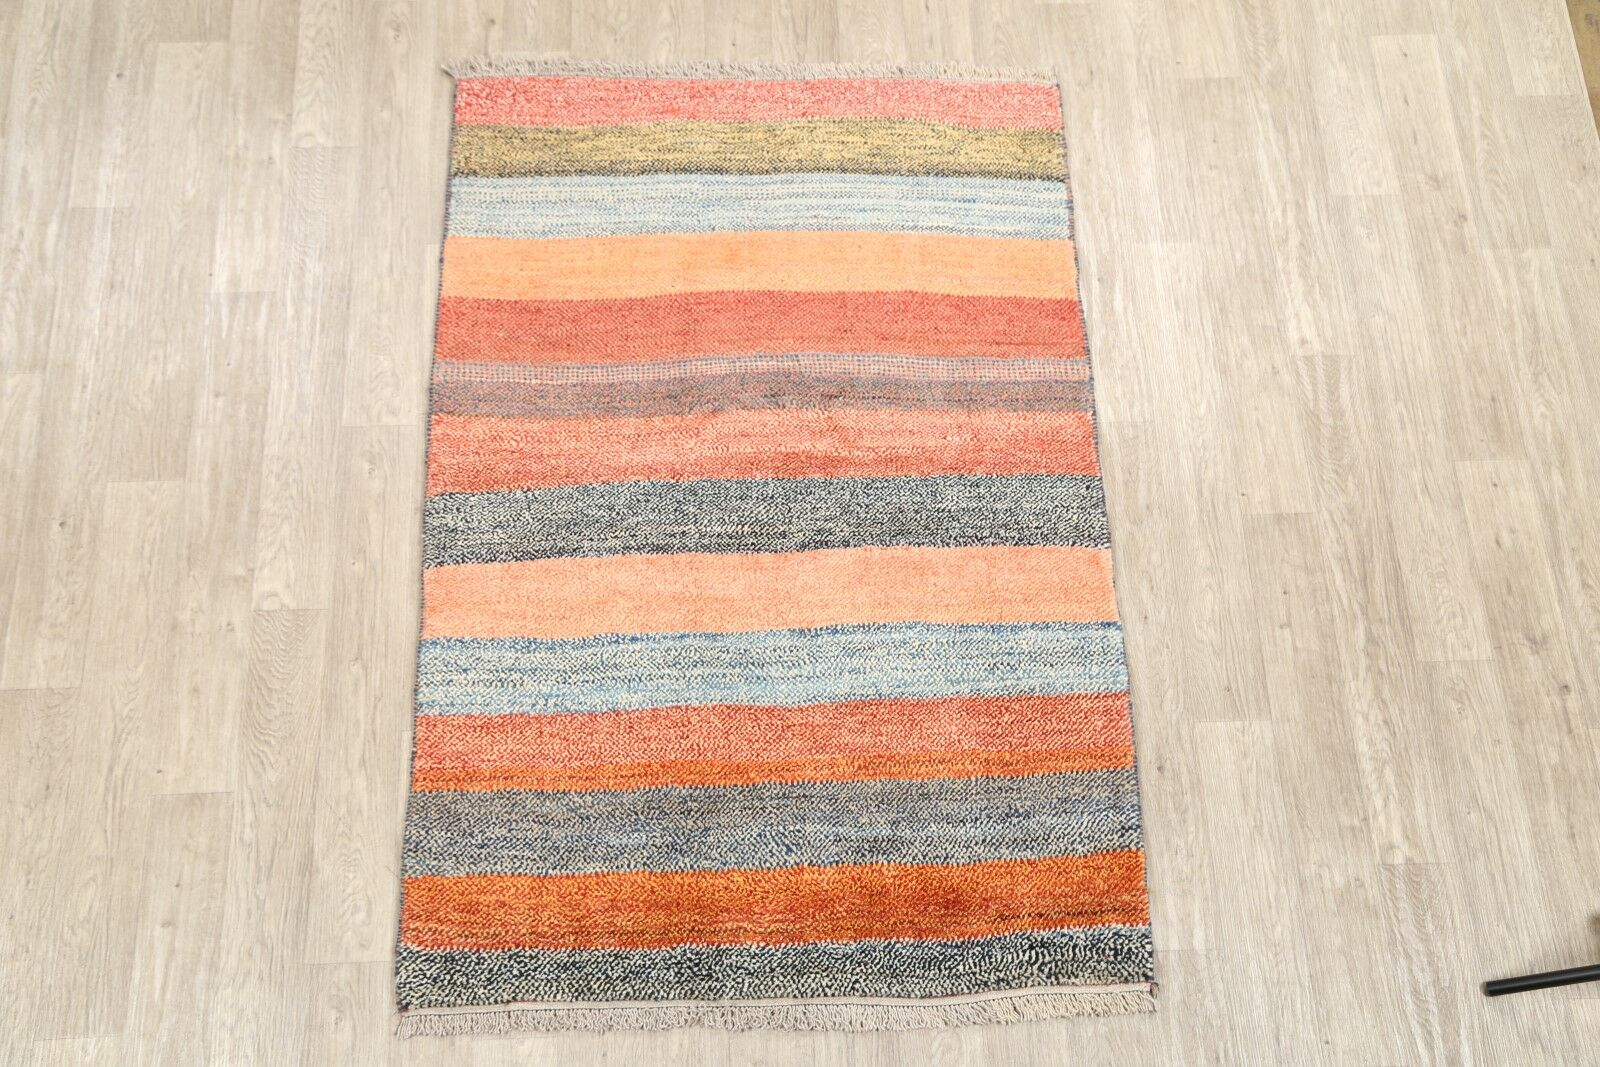 One-of-a-Kind Gabbeh Shiraz Persian Modern Hand-Knotted 4'2